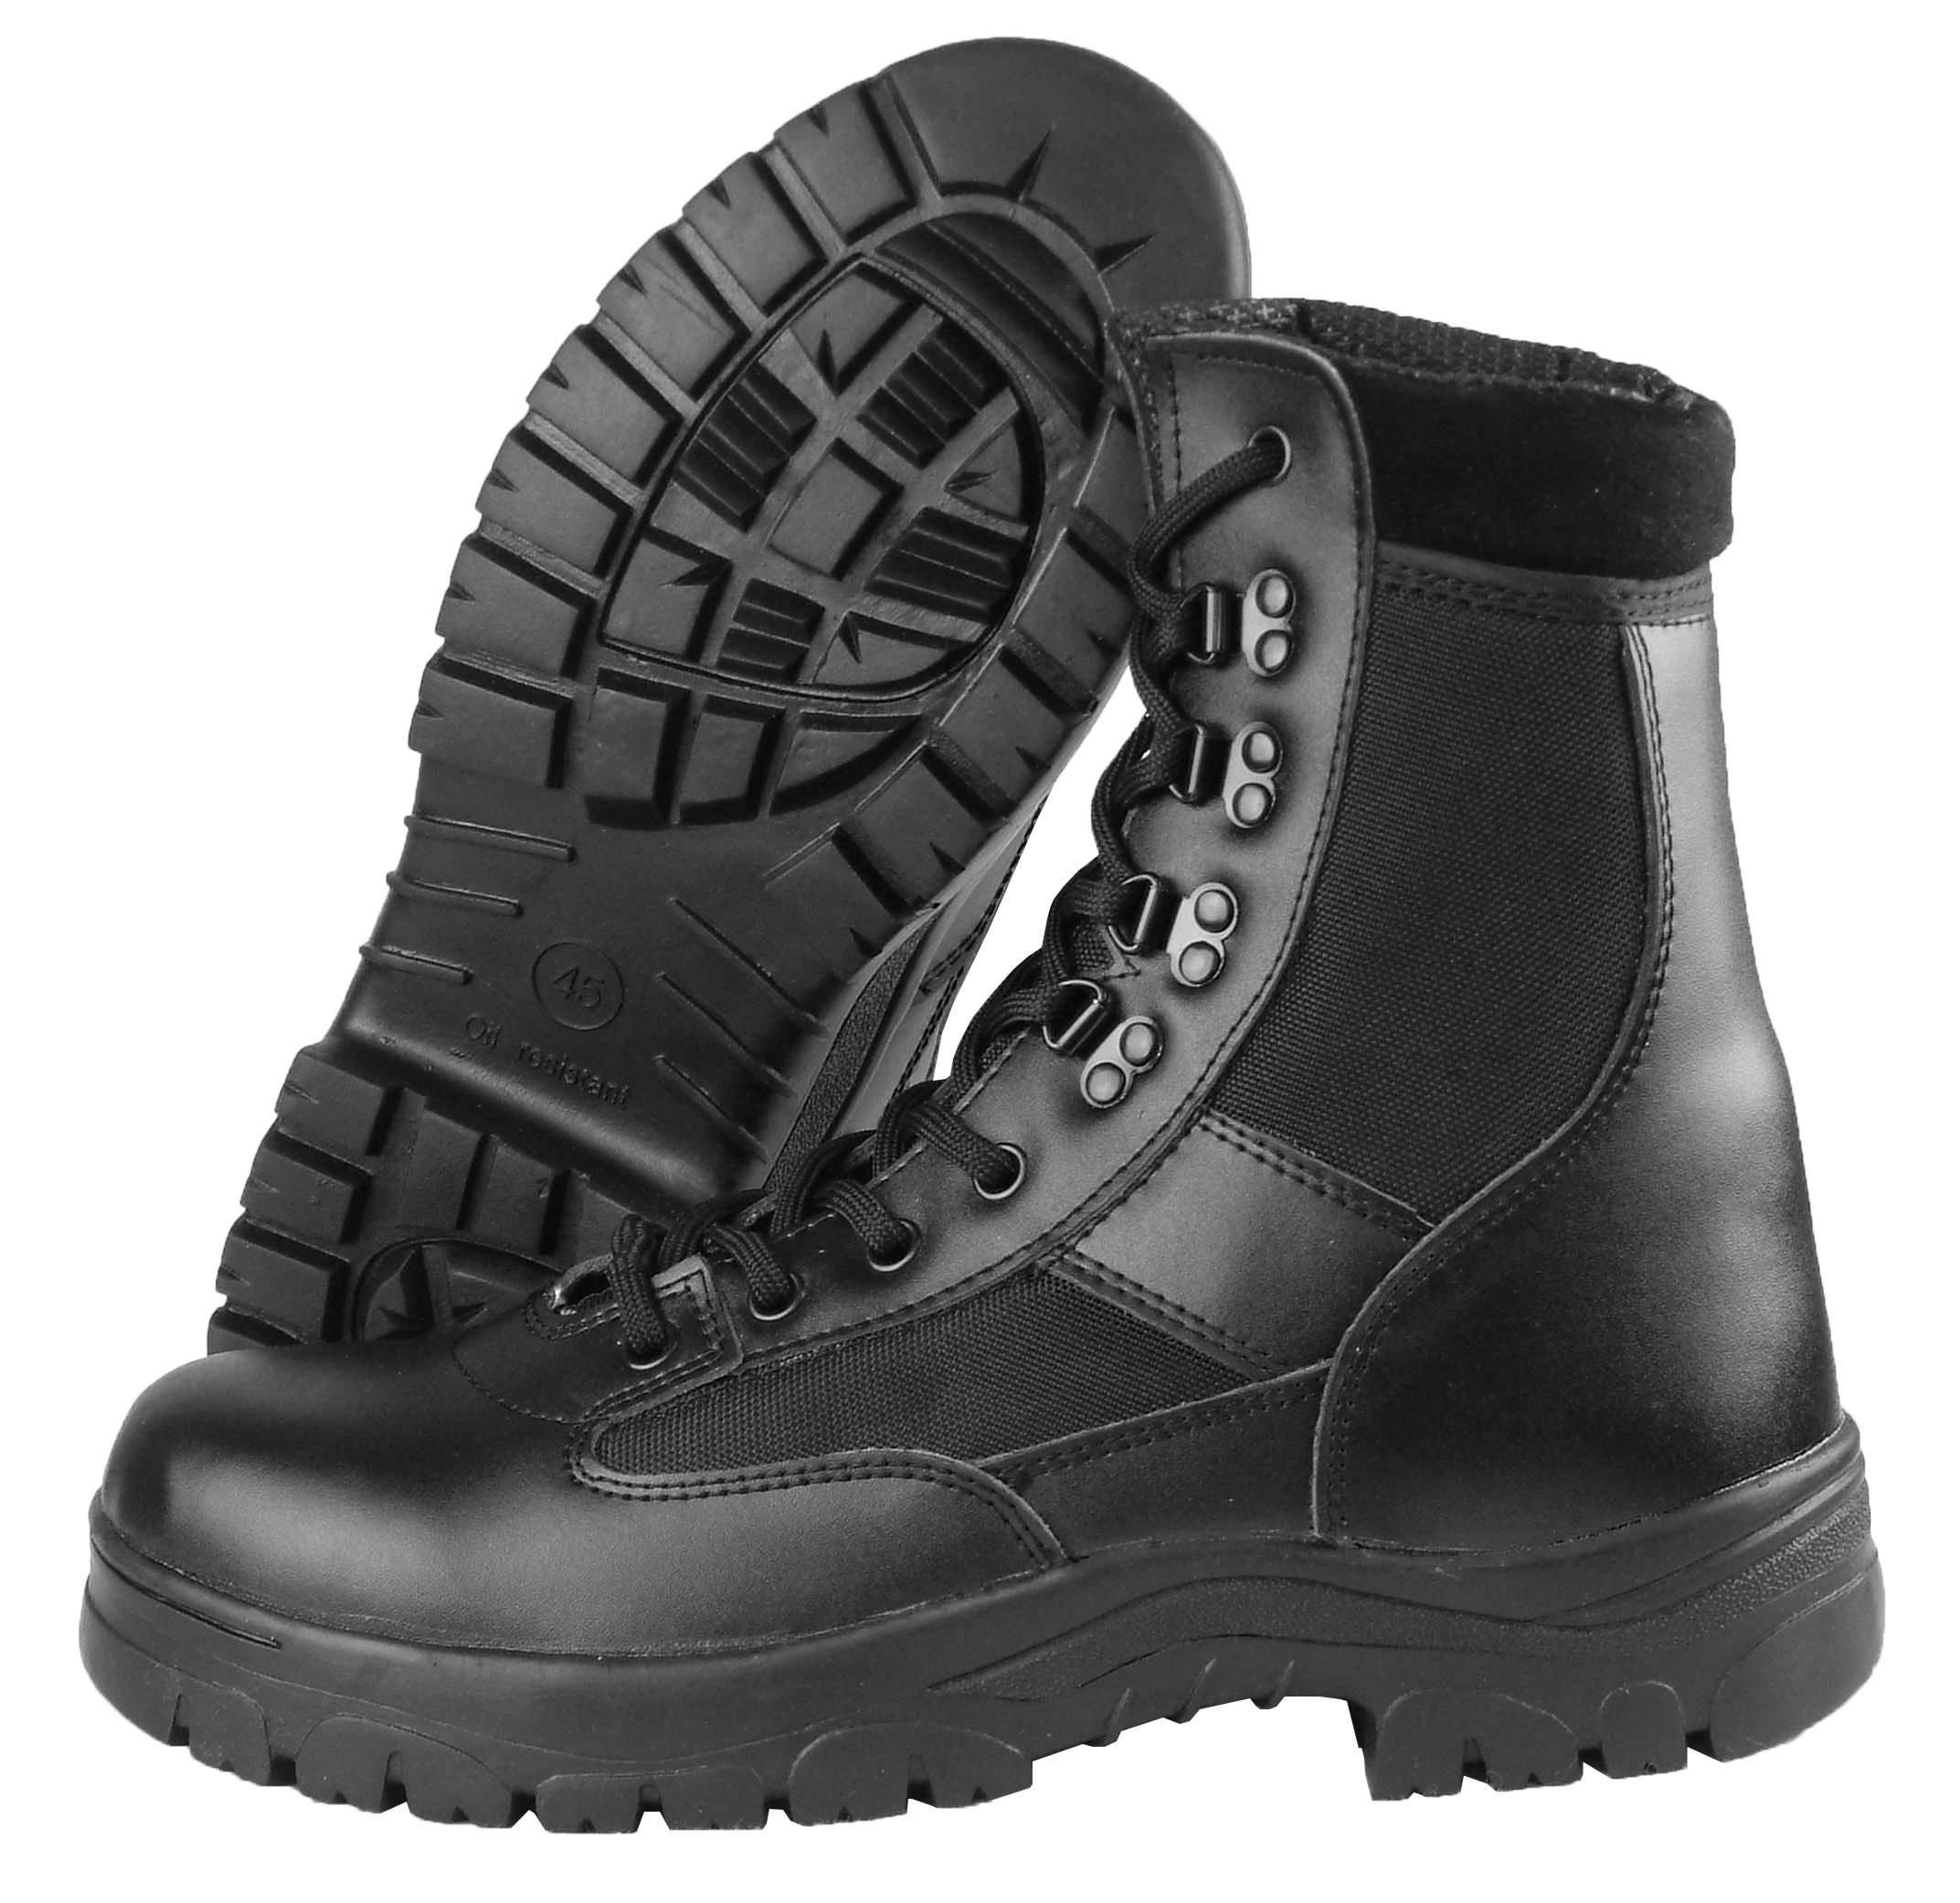 fb592f9ba23 Thinsulate Patrol Boots (Cadet Style)